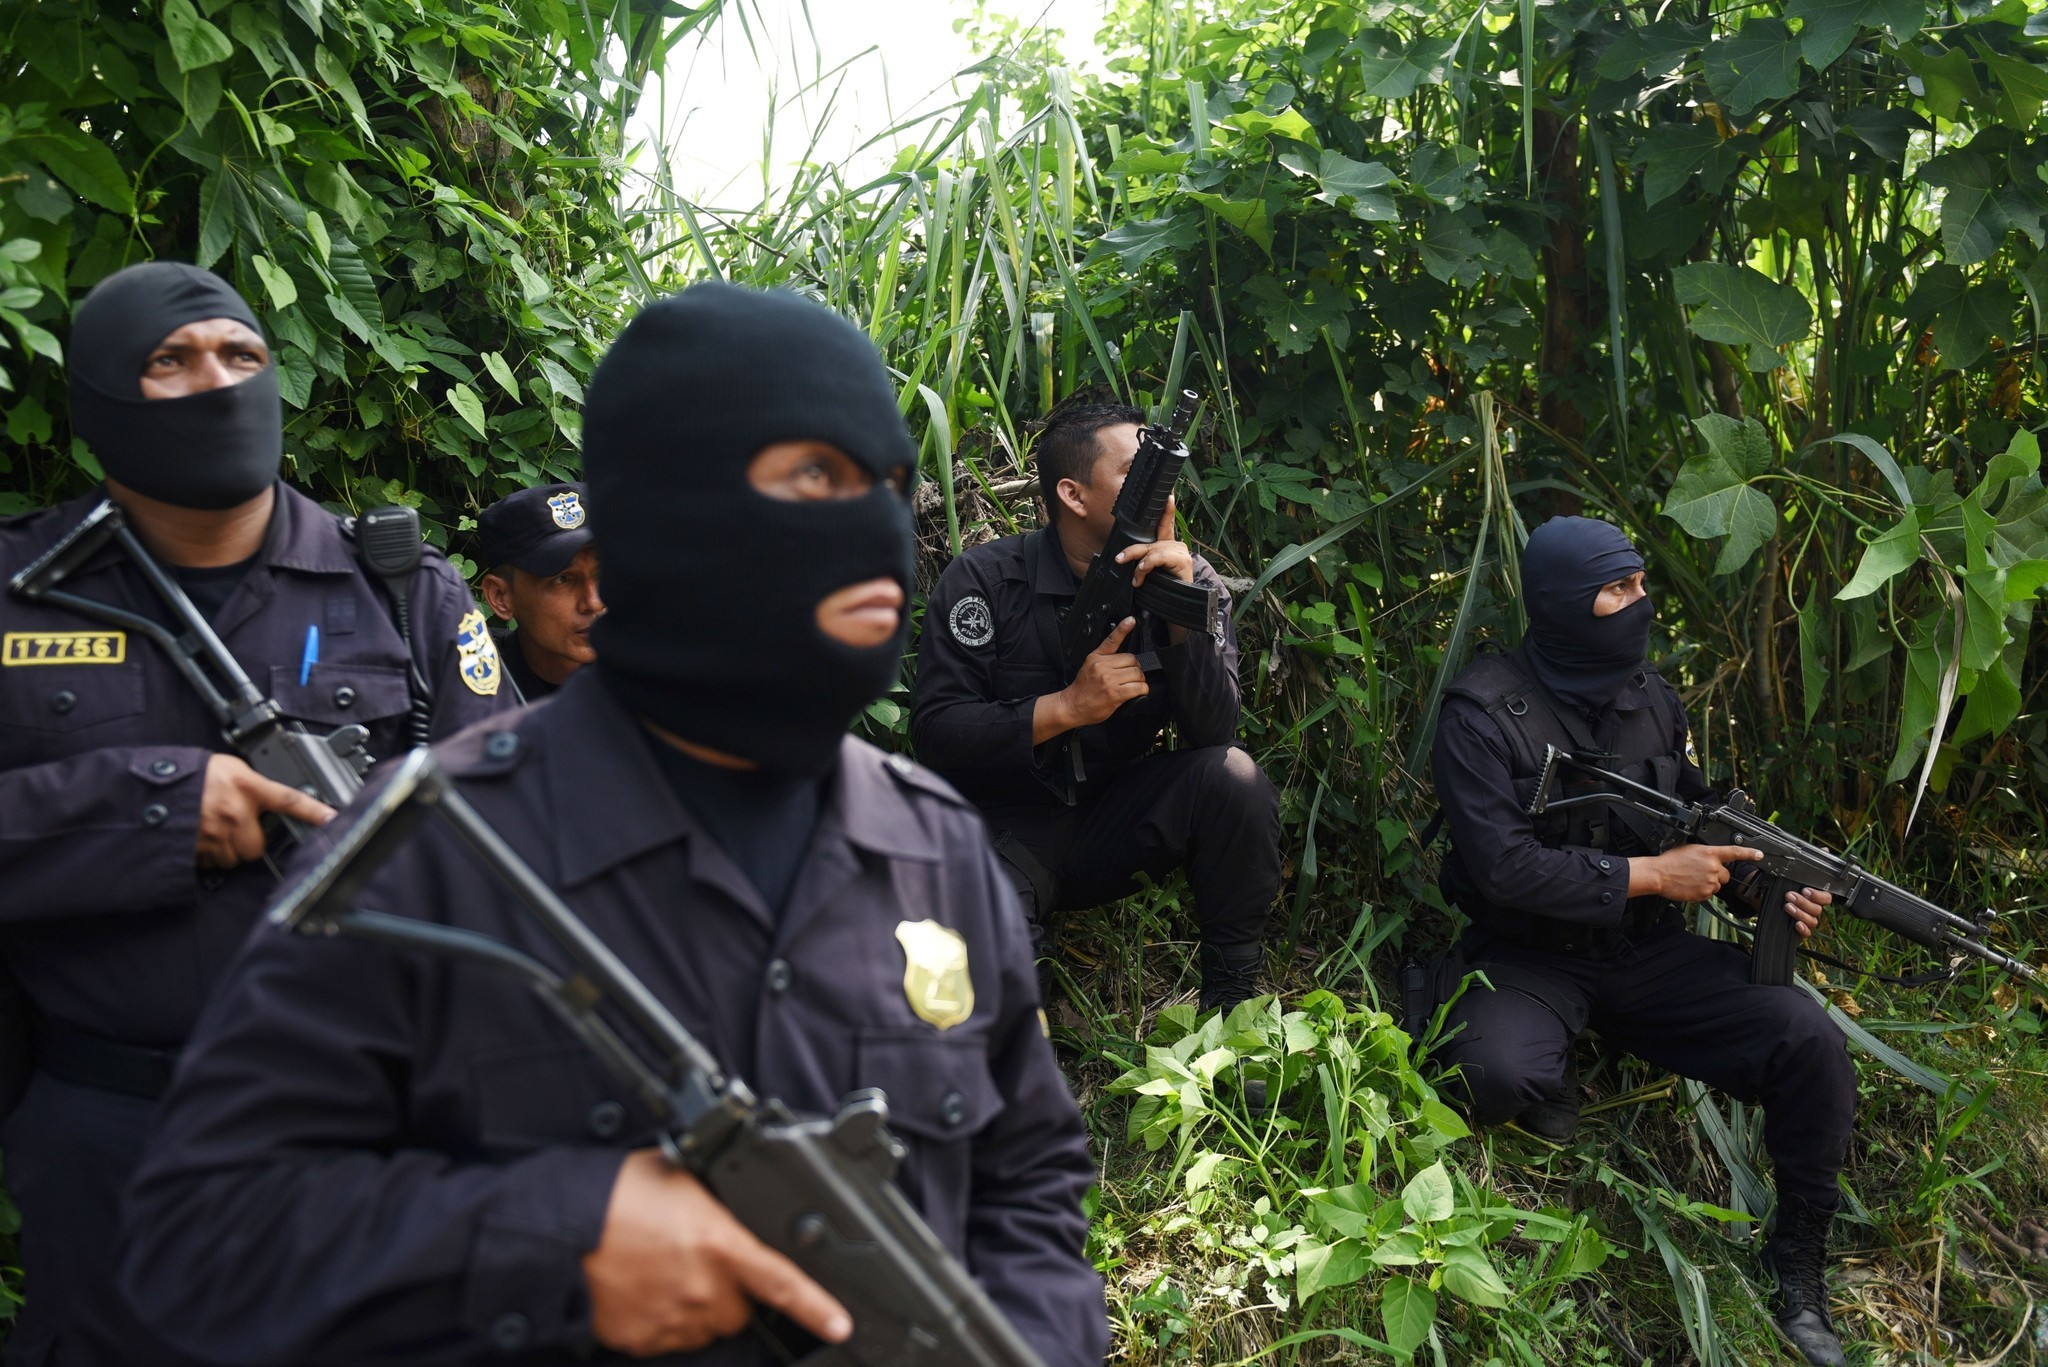 It's Official: San Salvador Is The Murder Capital Of The